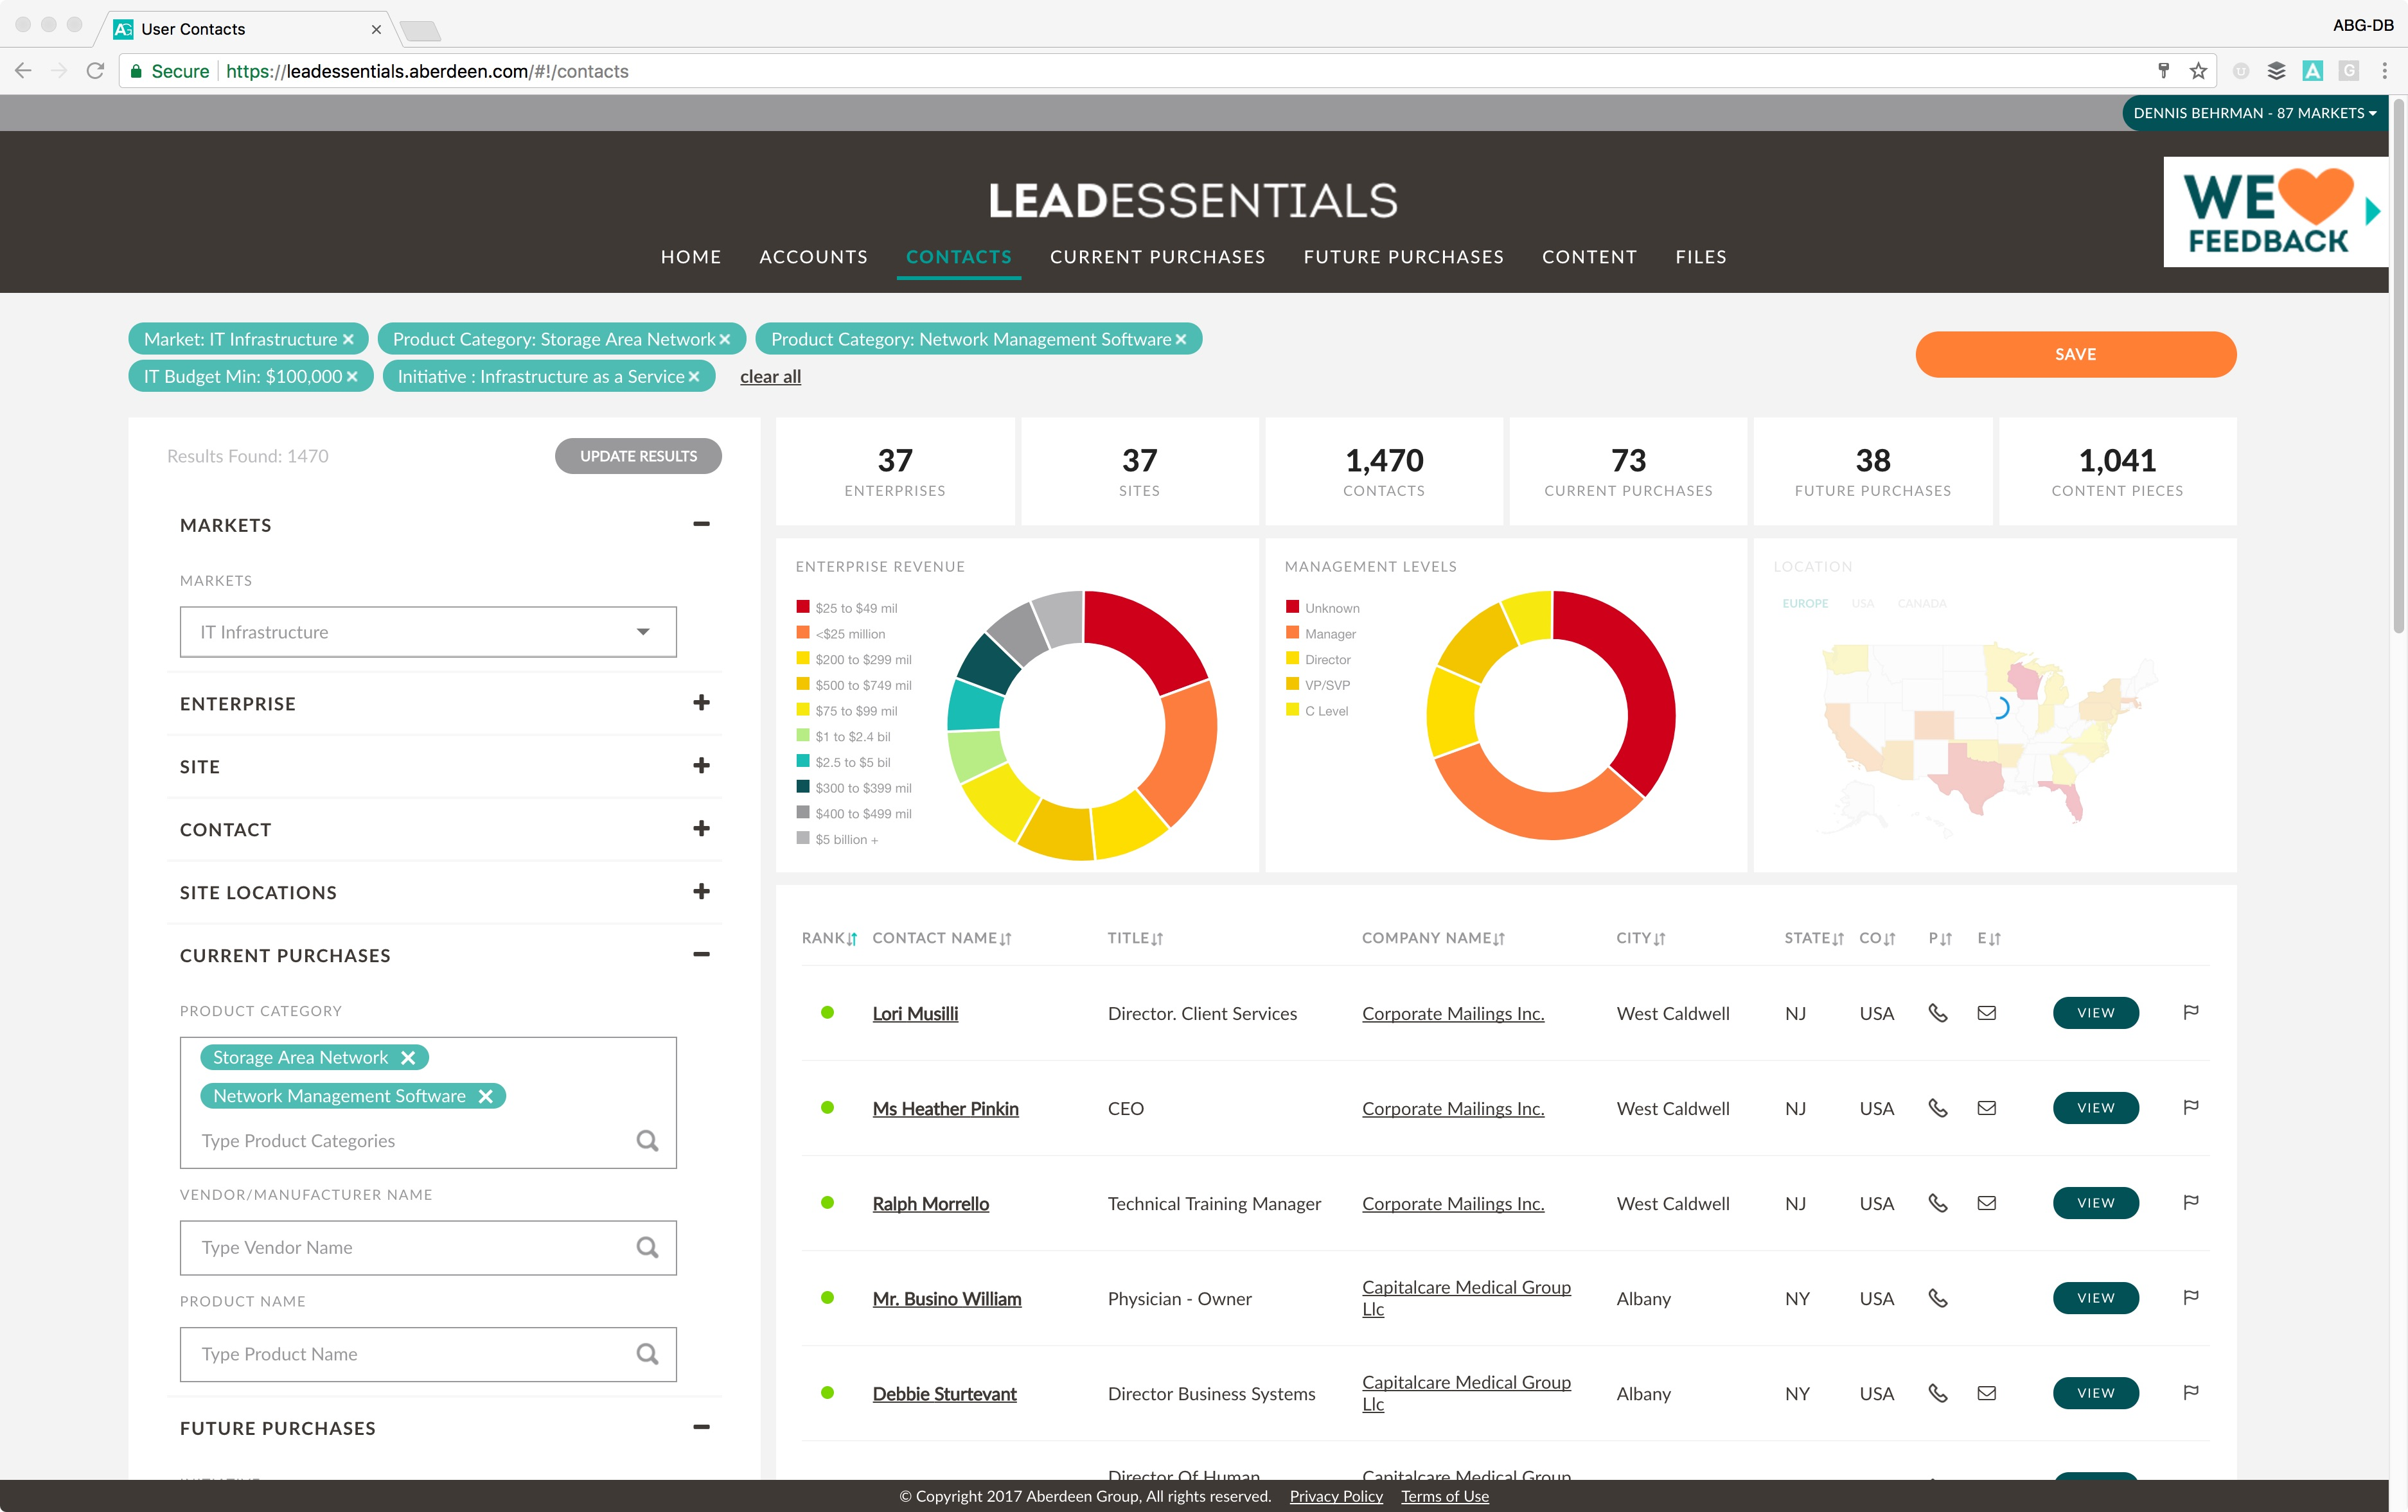 Lead Essentials Demo - Lead Essentials | Targeted, filtered, and exportable lead list